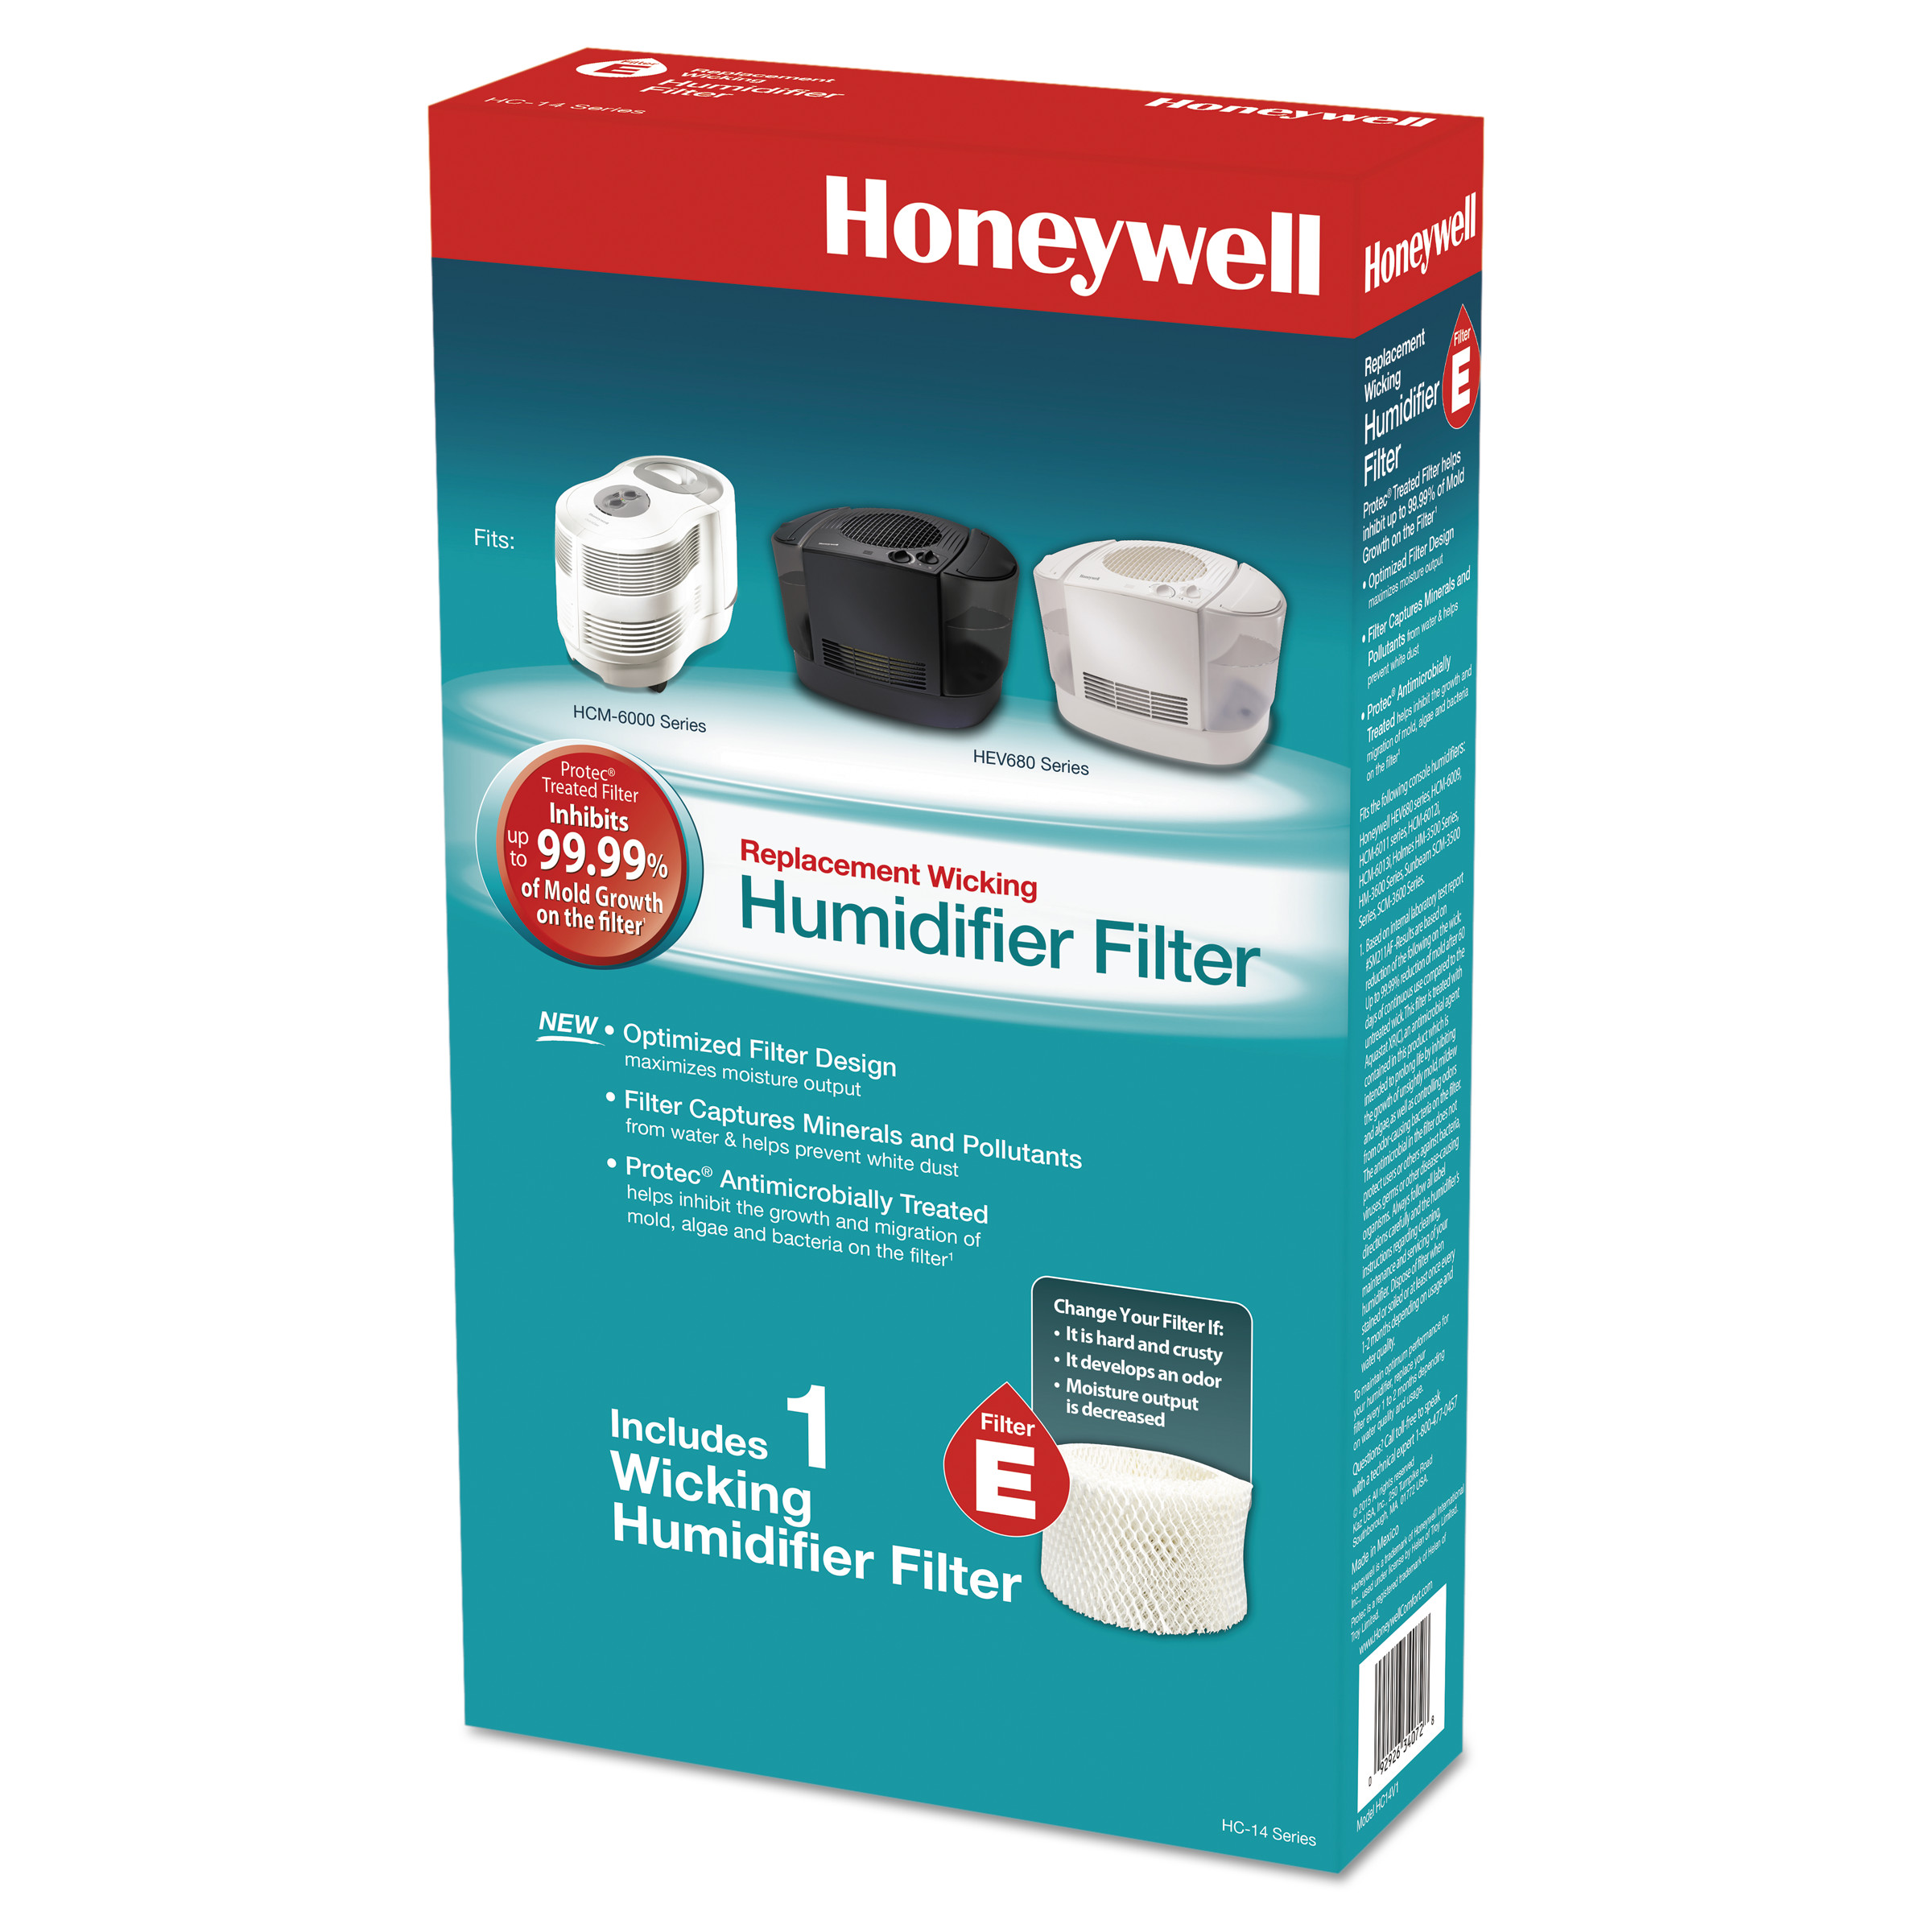 Honeywell Replacement Console Humidifier Filter E, 1 Pack